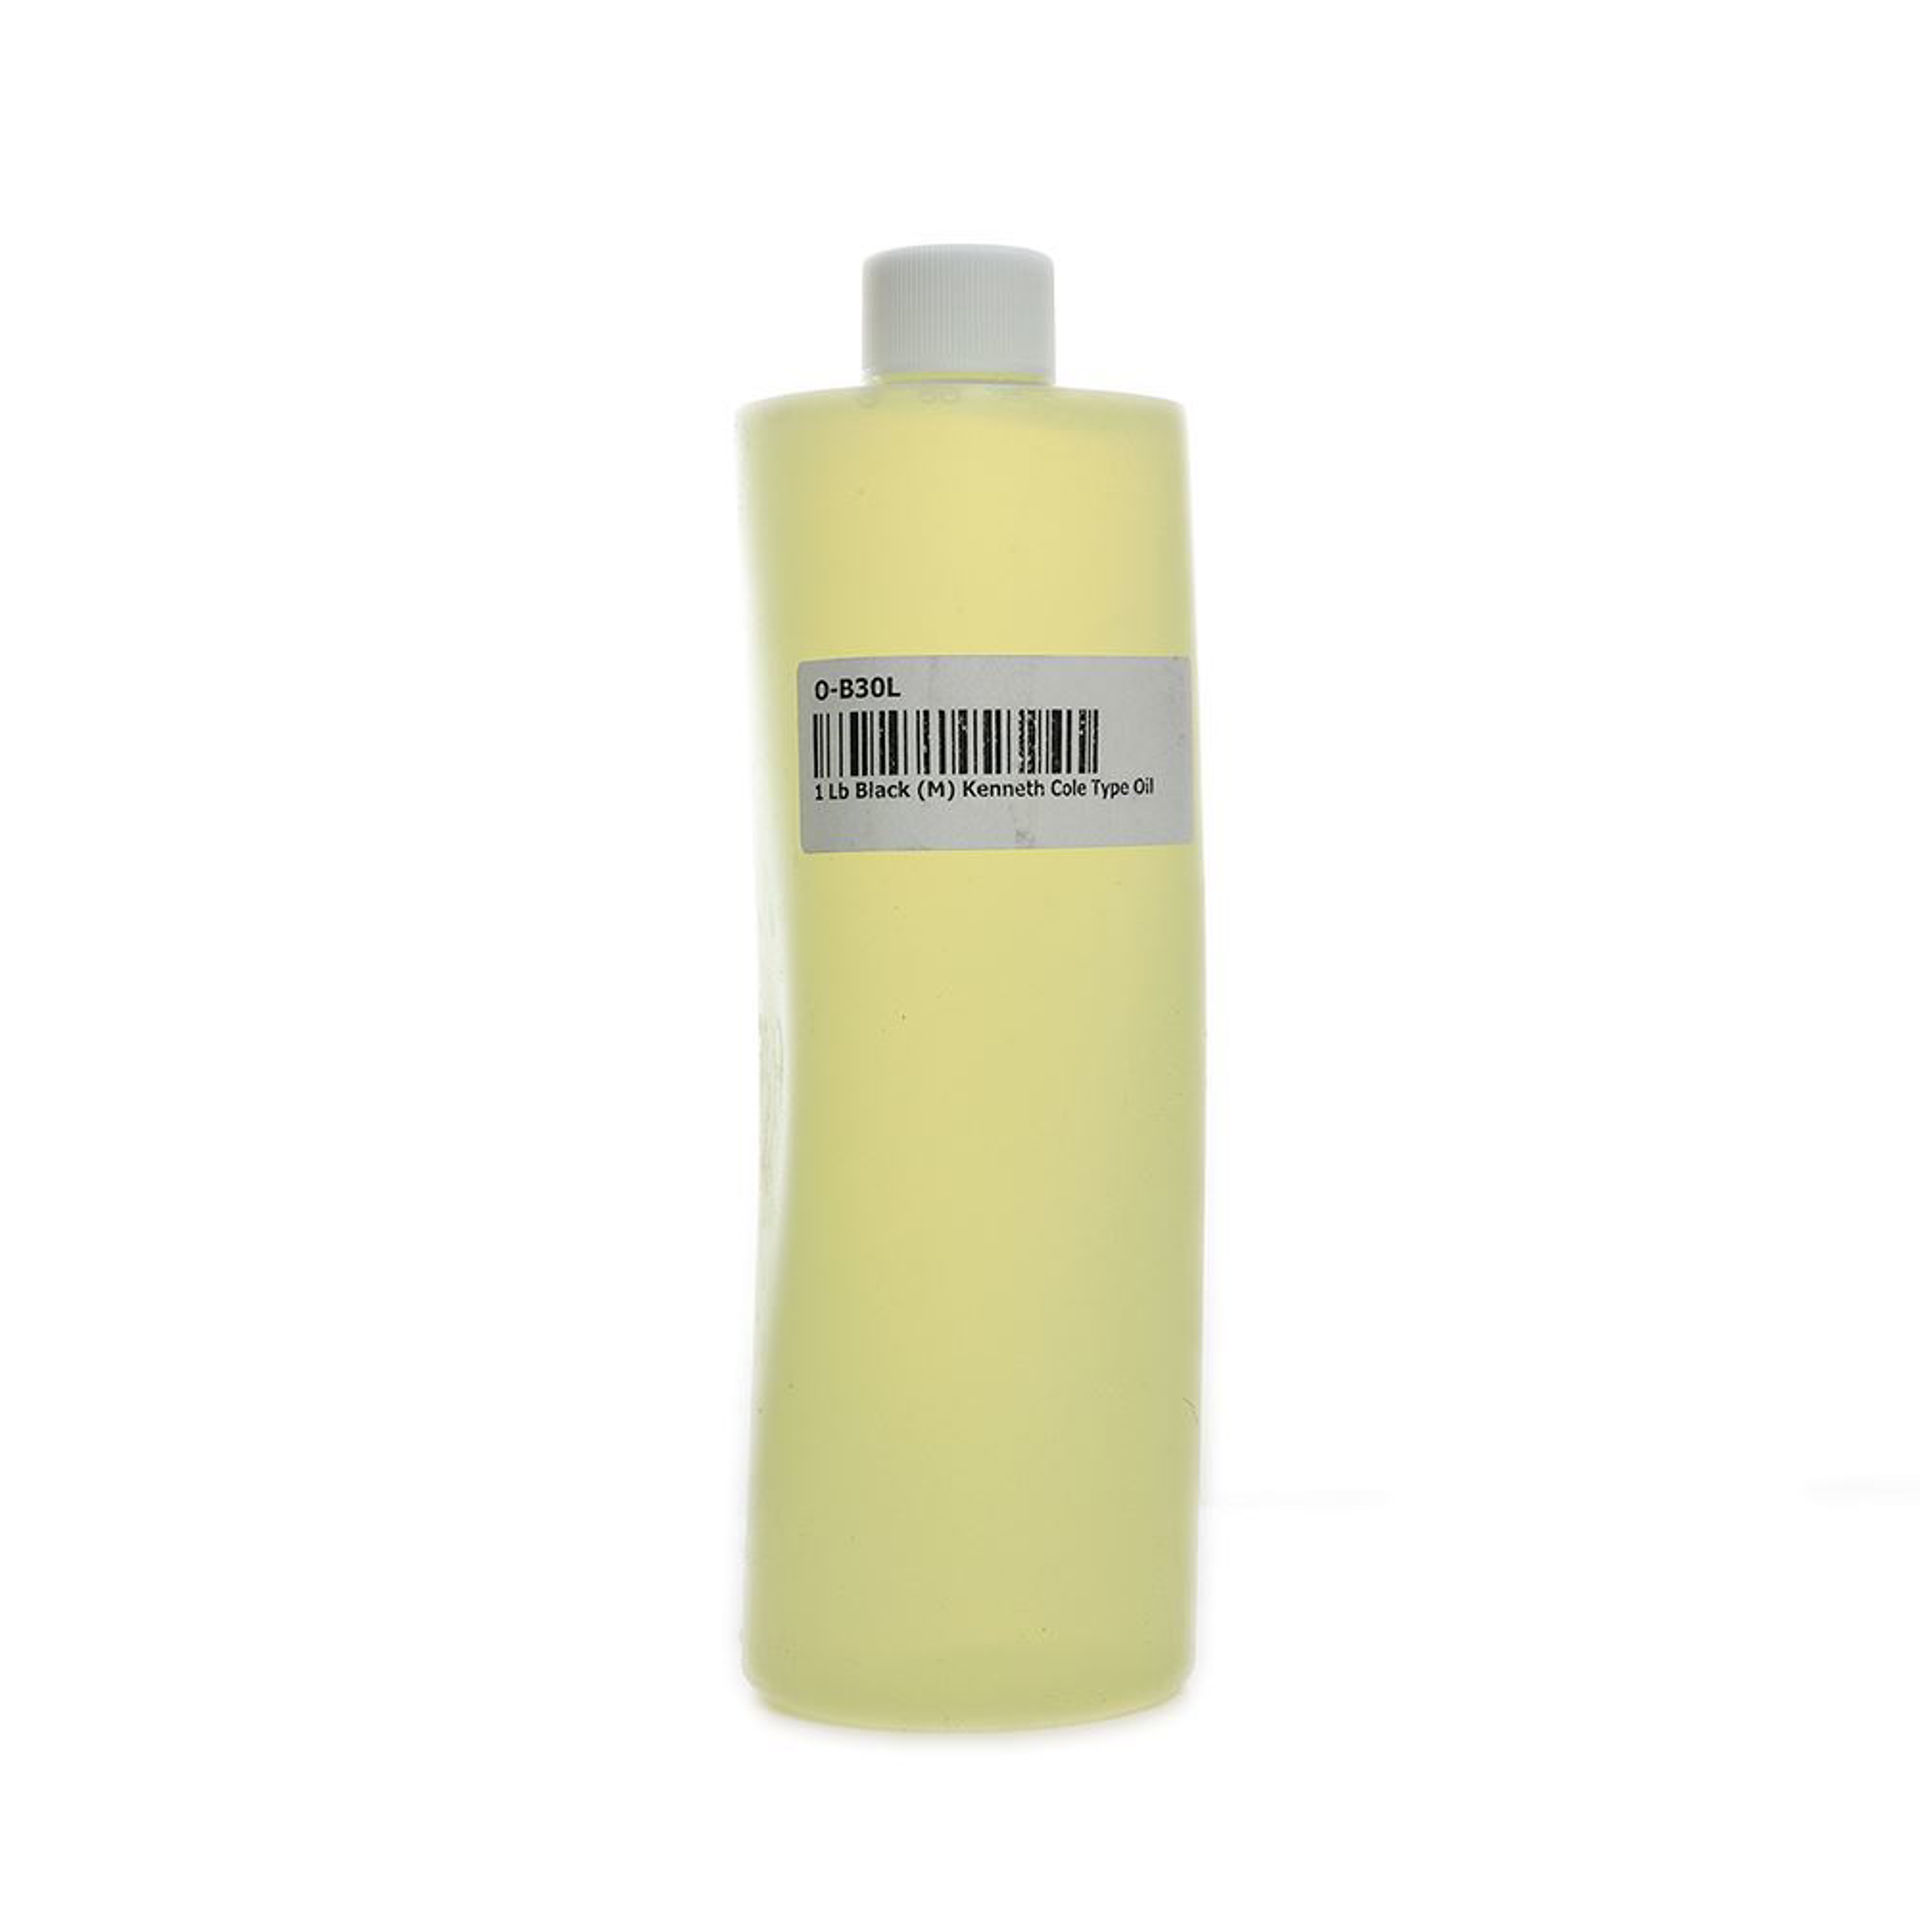 Picture of 1 Lb Black (M) Kenneth Cole Type Oil